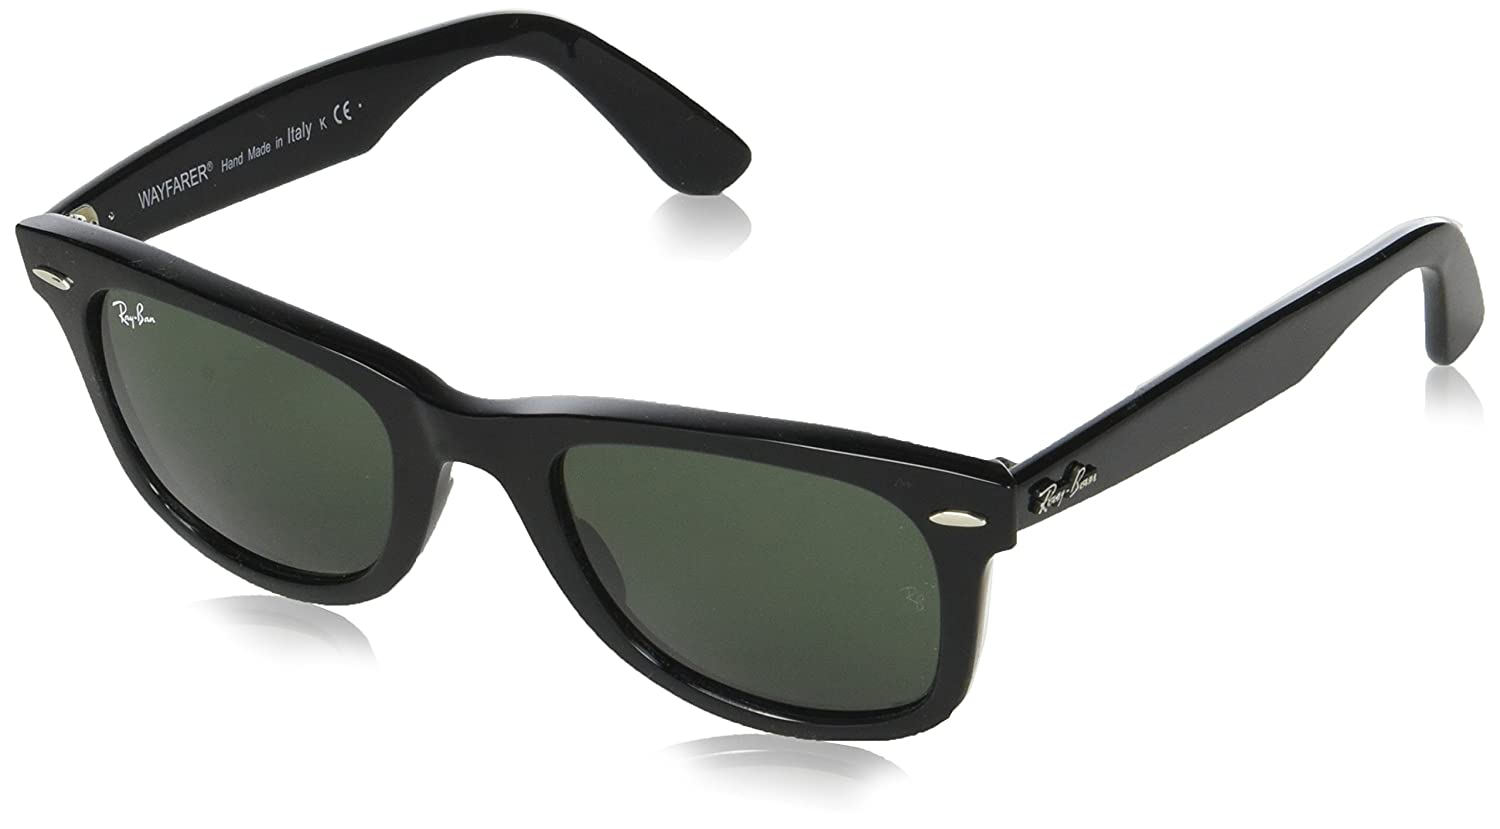 a6a42ee6c8c Amazon.com  Ray-Ban WAYFARER - BLACK Frame CRYSTAL GREEN Lenses 50mm  Non-Polarized  Ray-Ban  Shoes